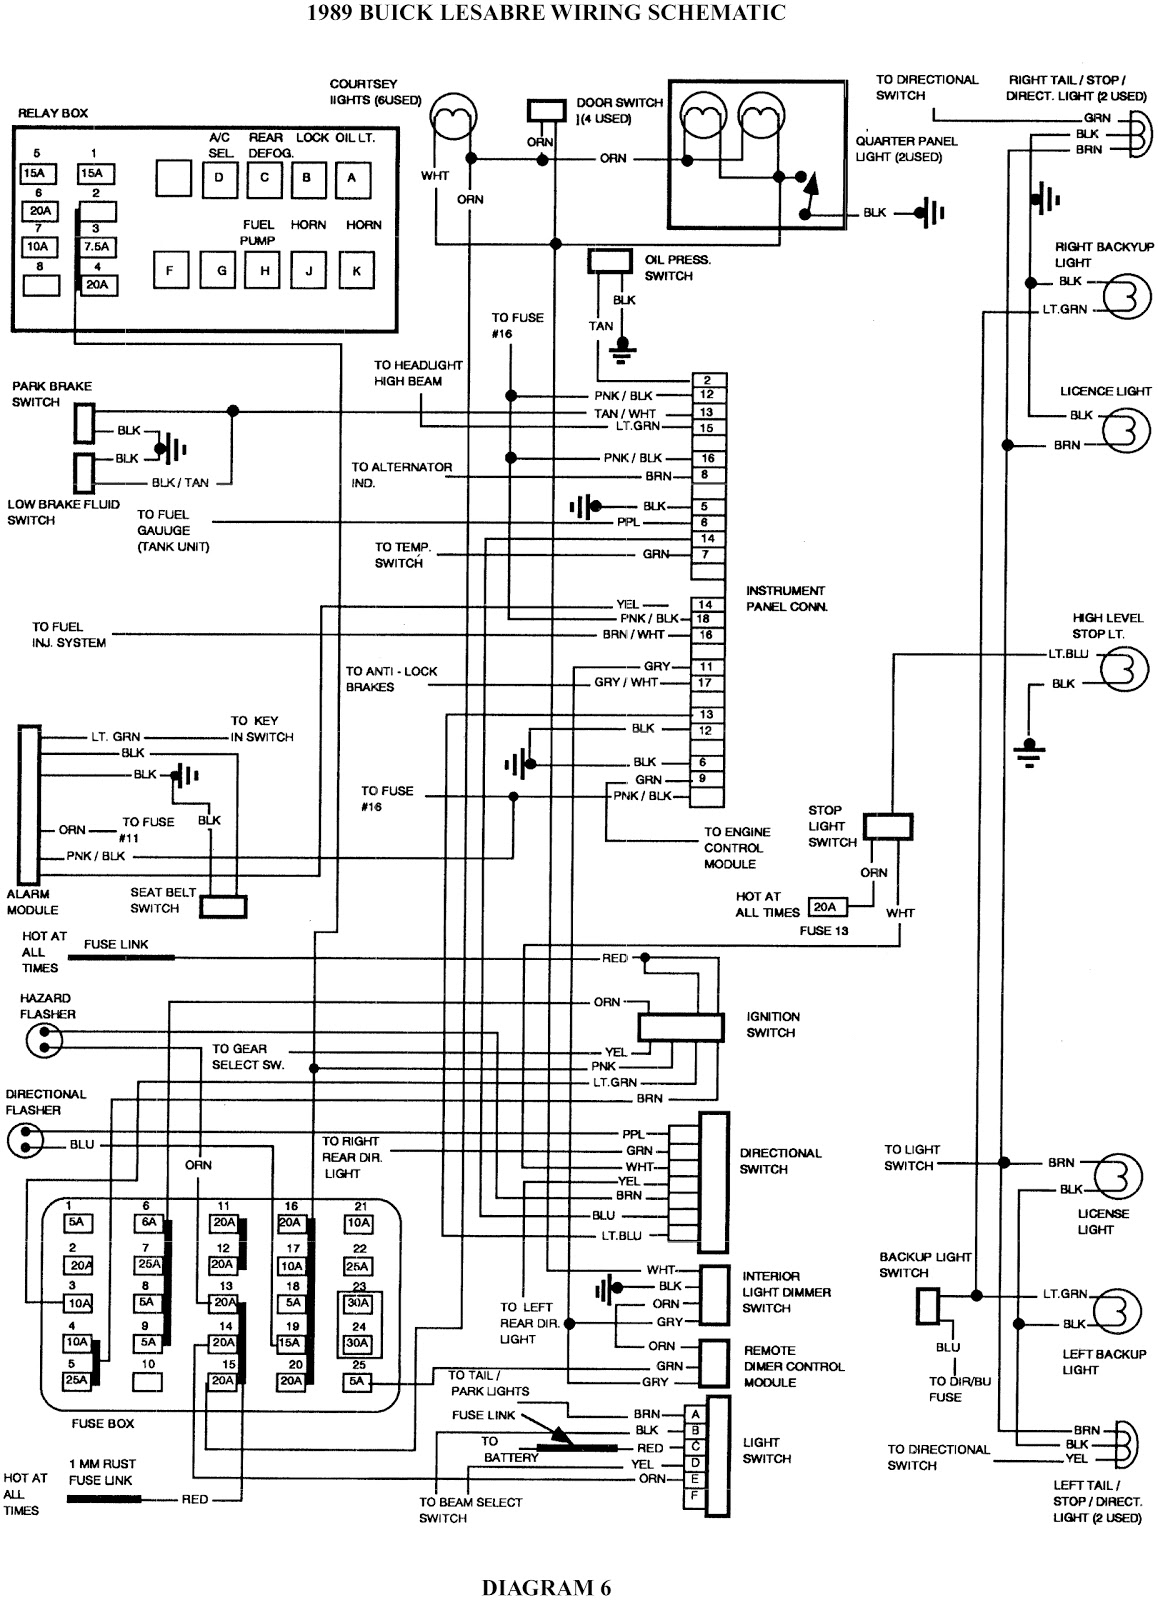 1998 Buick Lesabre Wiring Diagram Diagram Base Website Wiring Diagram -  VENDIAGRAM.EKLIPSEDESIGN.ITDiagram Base Website Full Edition - eklipsedesign.it